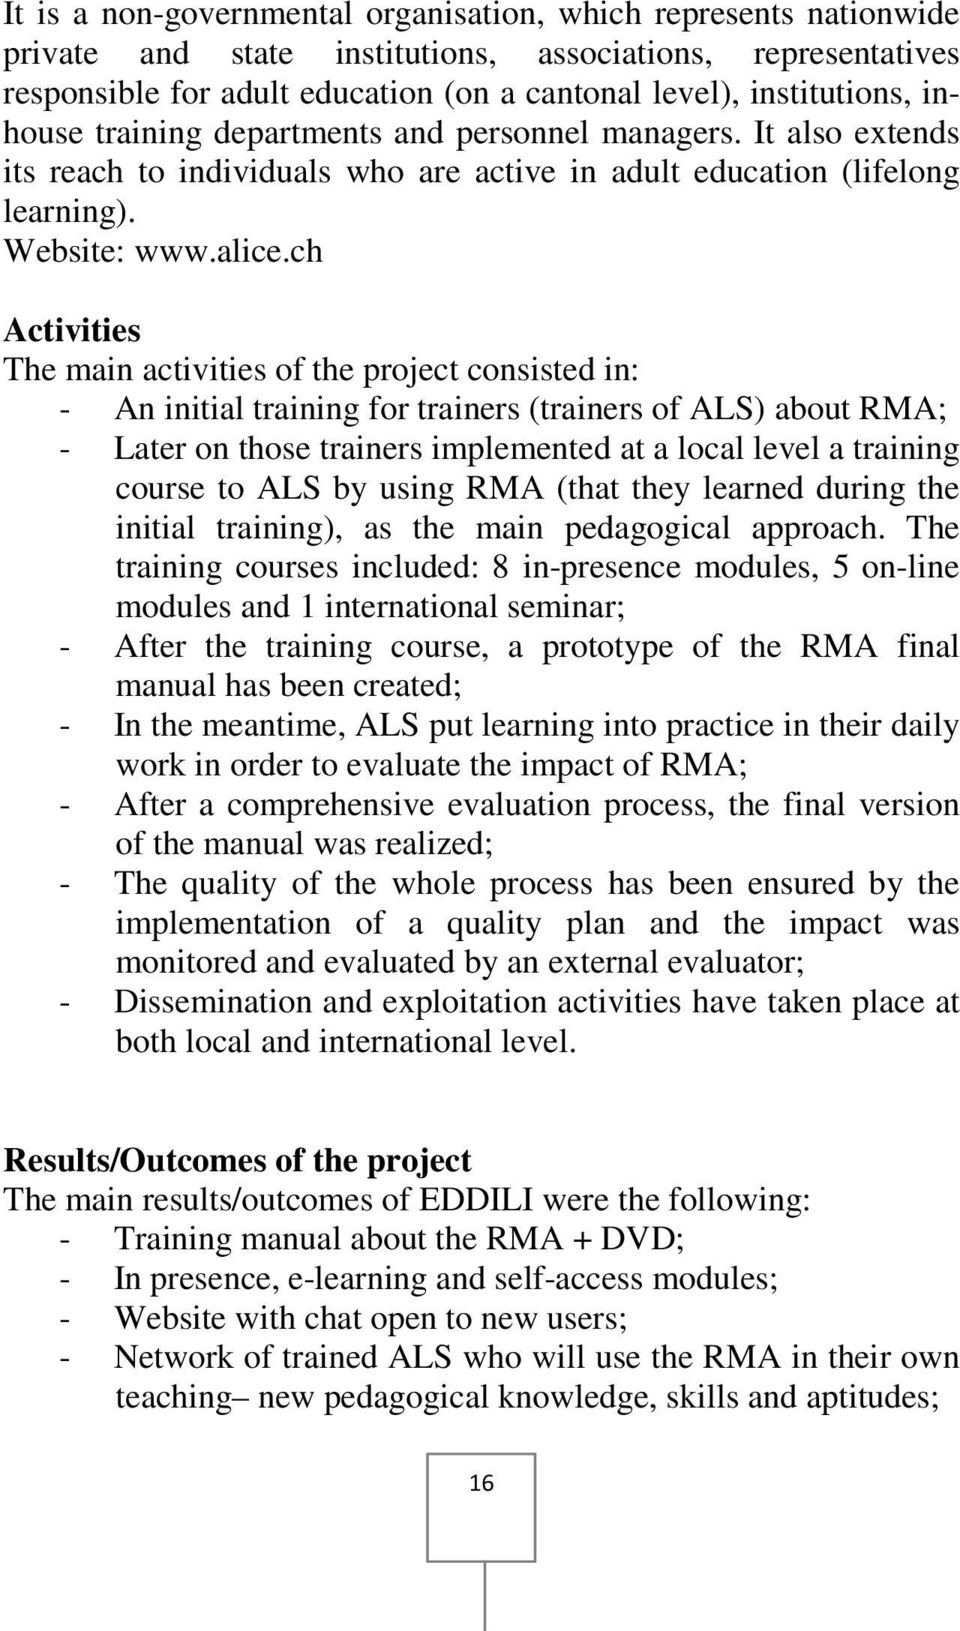 ch Activities The main activities of the project consisted in: - An initial training for trainers (trainers of ALS) about RMA; - Later on those trainers implemented at a local level a training course